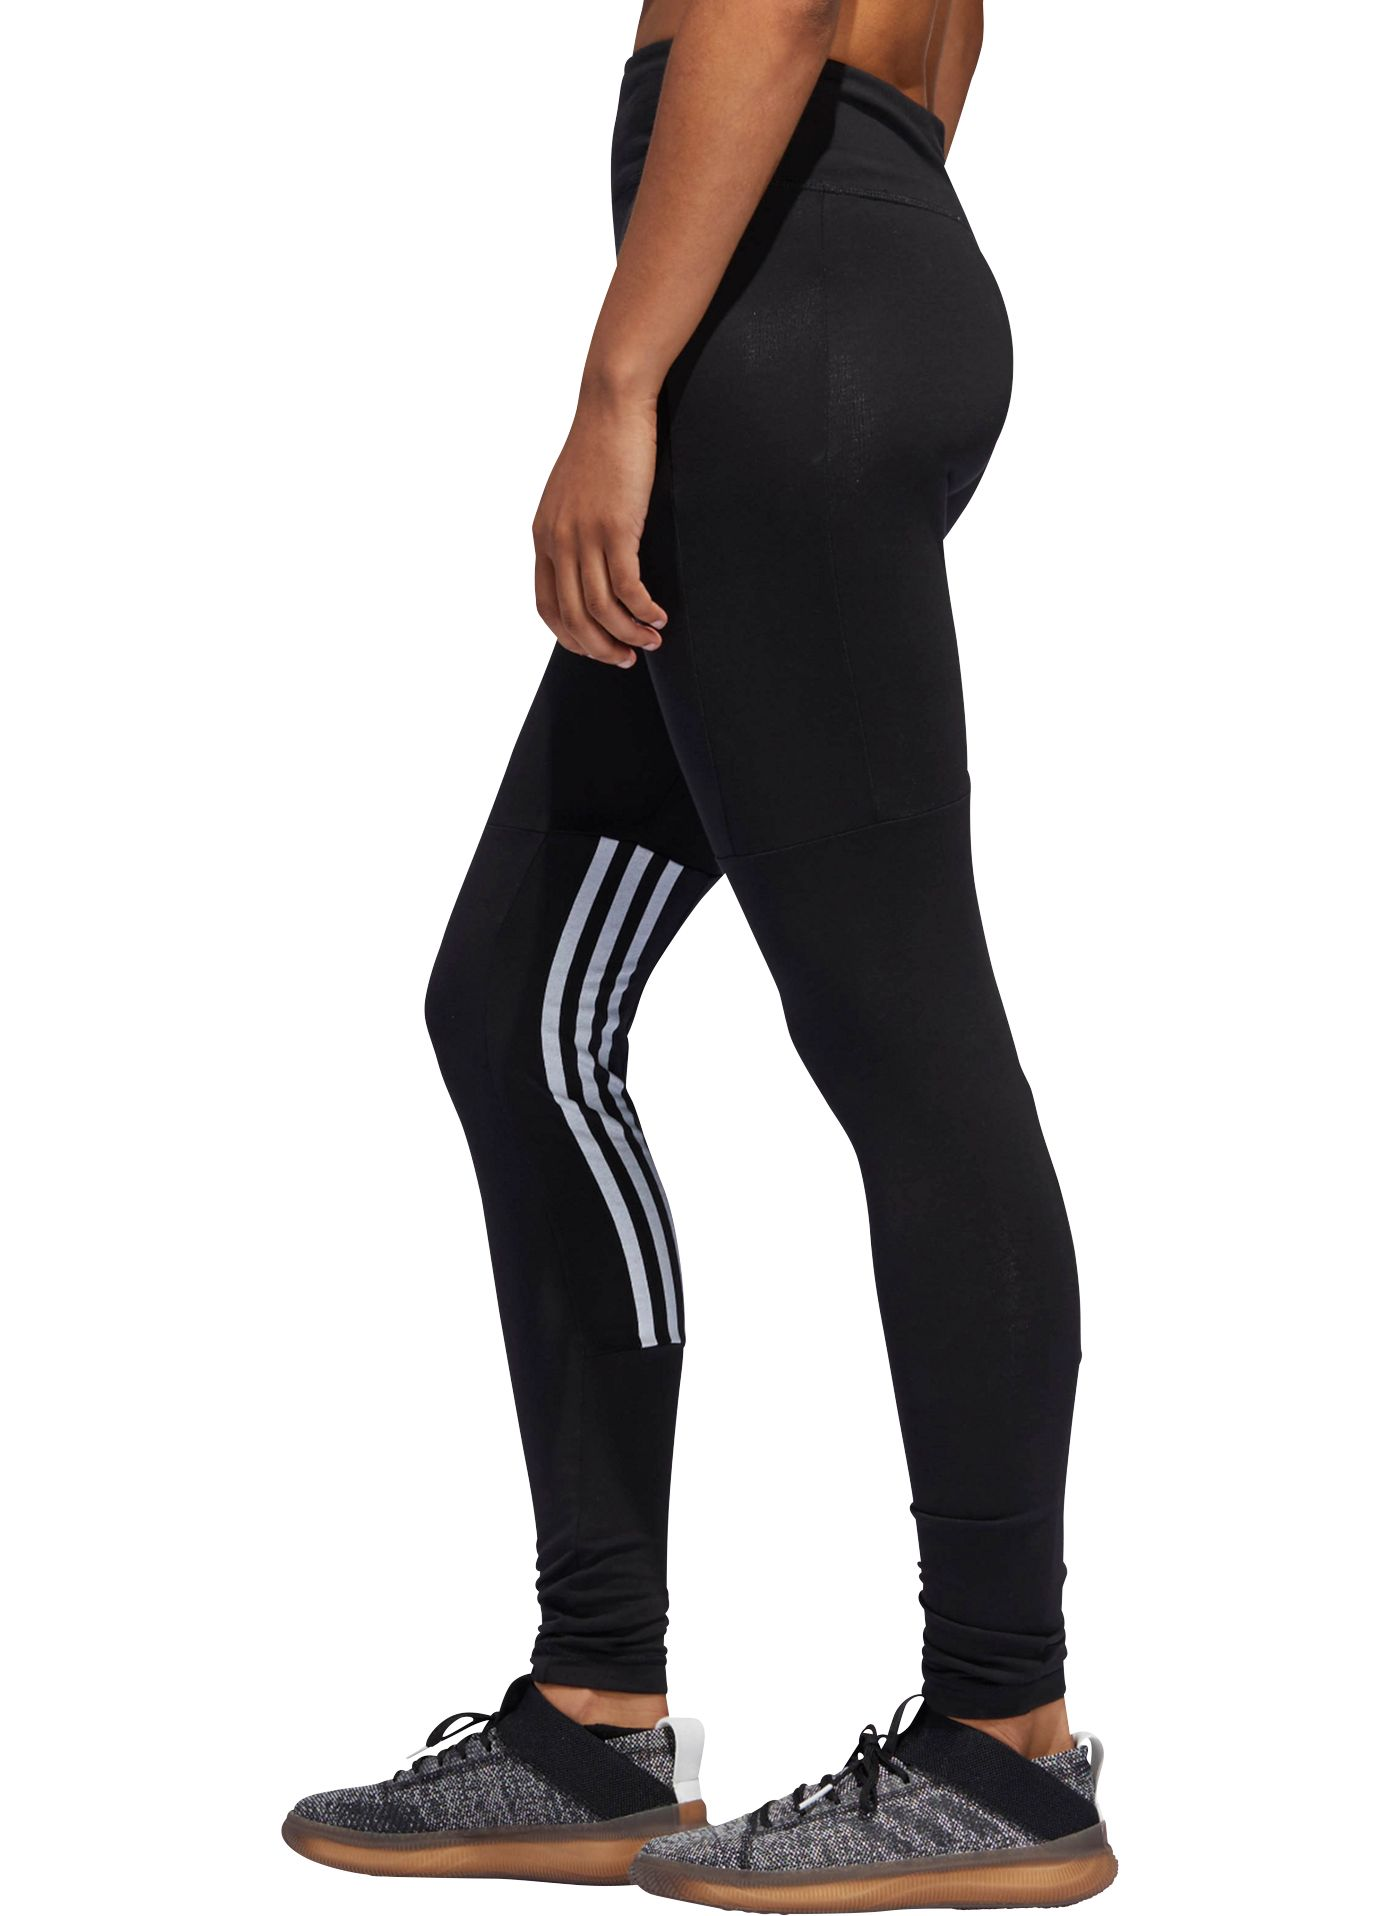 adidas Women's Sport 2 Street Prize Tights